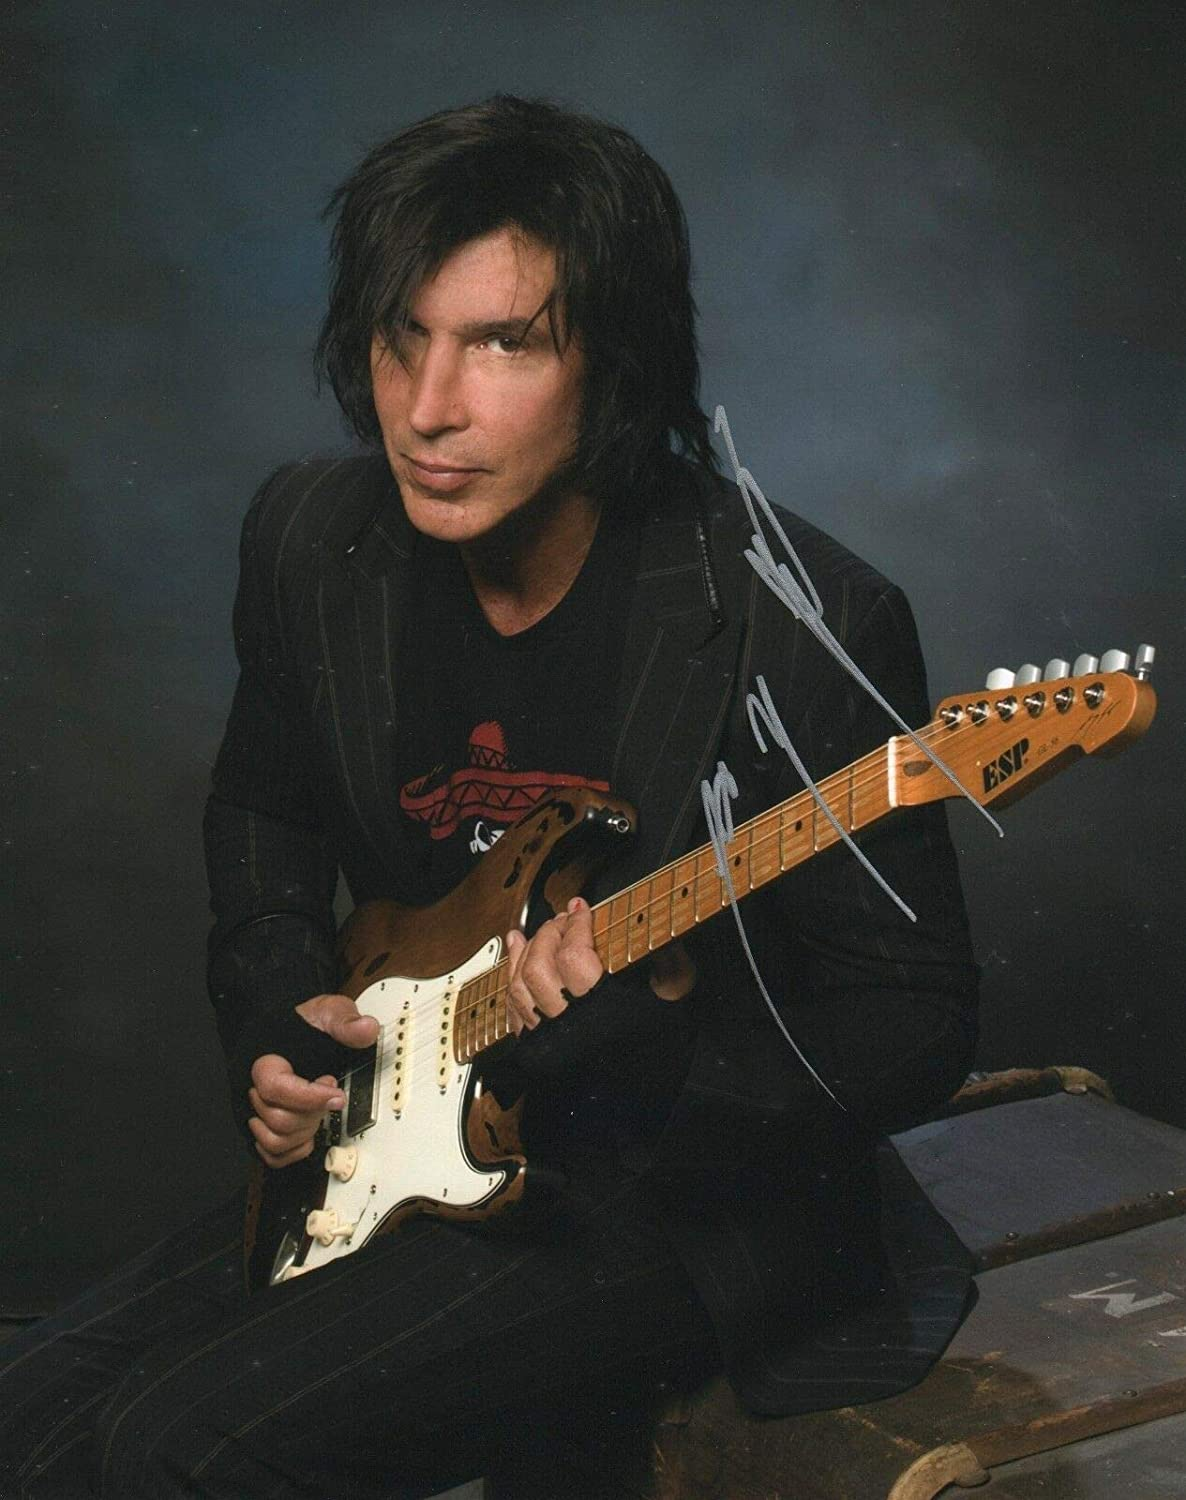 The 66-year old son of father (?) and mother(?) George Lynch in 2020 photo. George Lynch earned a  million dollar salary - leaving the net worth at  million in 2020